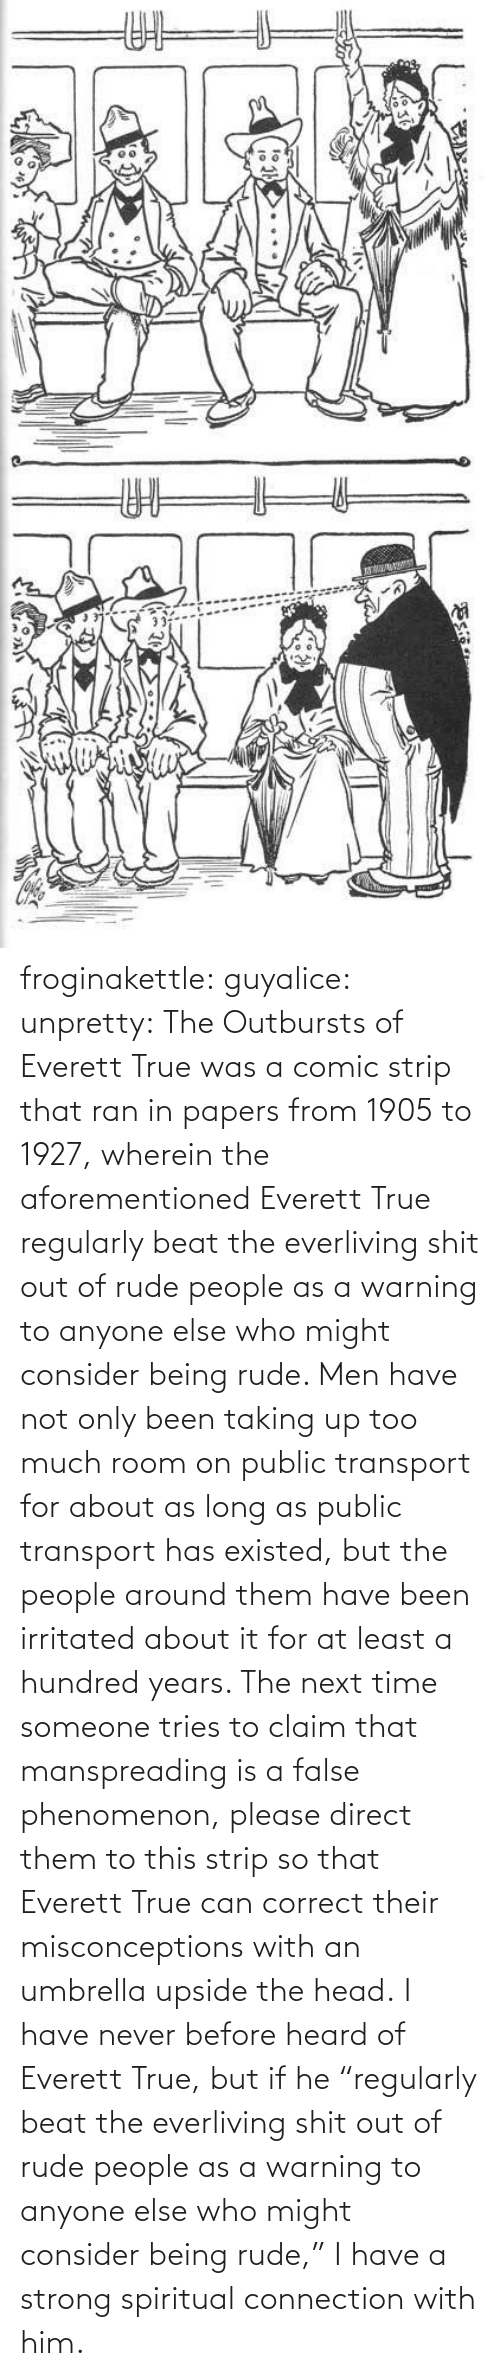 "Rude: ఇ  క froginakettle:  guyalice:  unpretty:  The Outbursts of Everett True was a comic strip that ran in papers from 1905 to 1927, wherein the aforementioned Everett True regularly beat the everliving shit out of rude people as a warning to anyone else who might consider being rude. Men have not only been taking up too much room on public transport for about as long as public transport has existed, but the people around them have been irritated about it for at least a hundred years. The next time someone tries to claim that manspreading is a false phenomenon, please direct them to this strip so that Everett True can correct their misconceptions with an umbrella upside the head.  I have never before heard of Everett True, but if he ""regularly beat the everliving shit out of rude people as a warning to anyone else who might consider being rude,"" I have a strong spiritual connection with him."